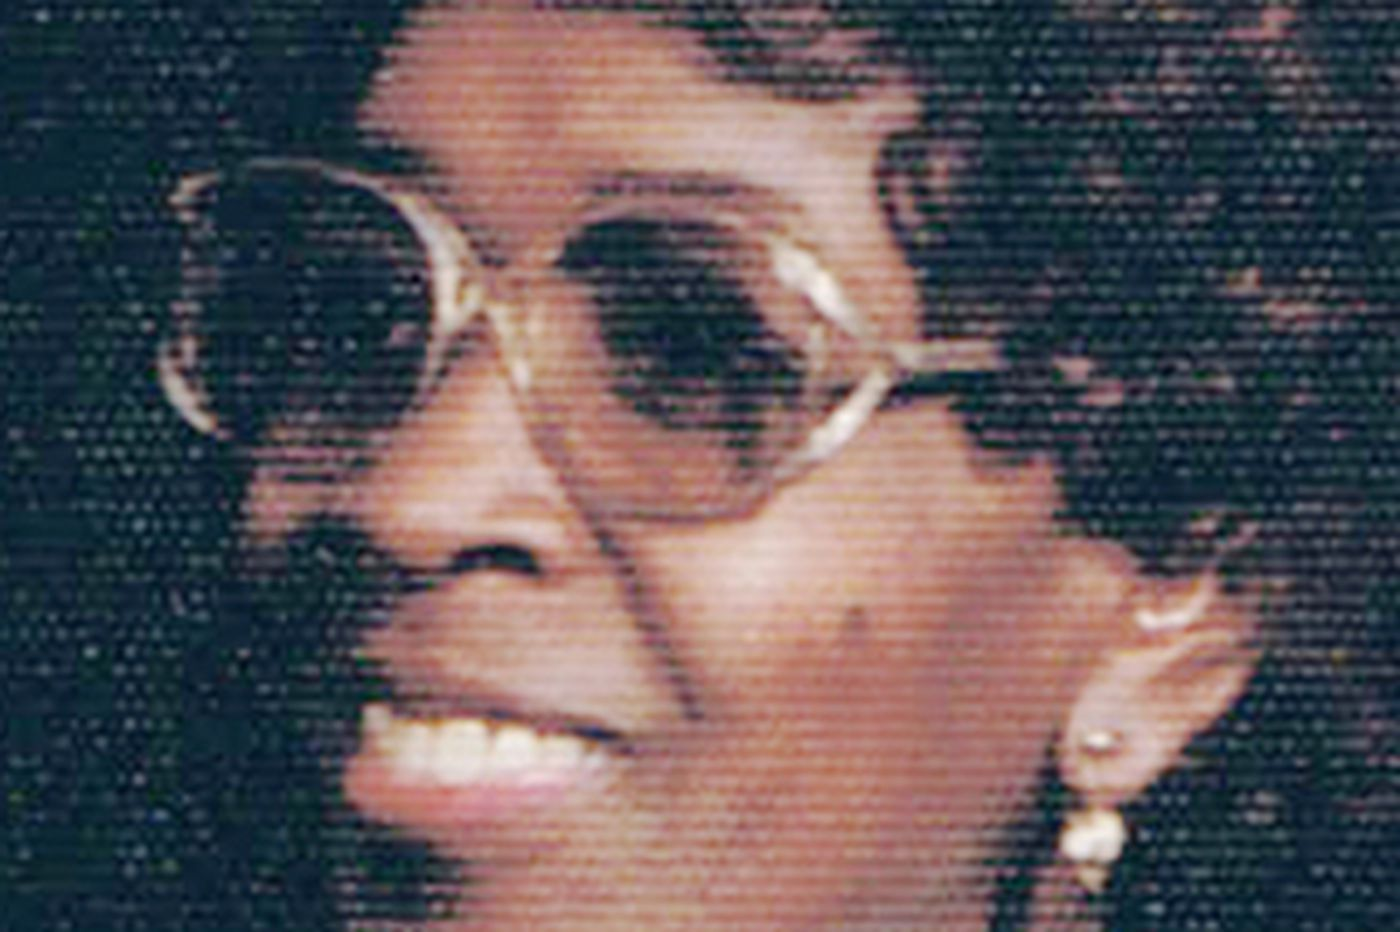 Cleo Joyner, an active churchwoman, dies